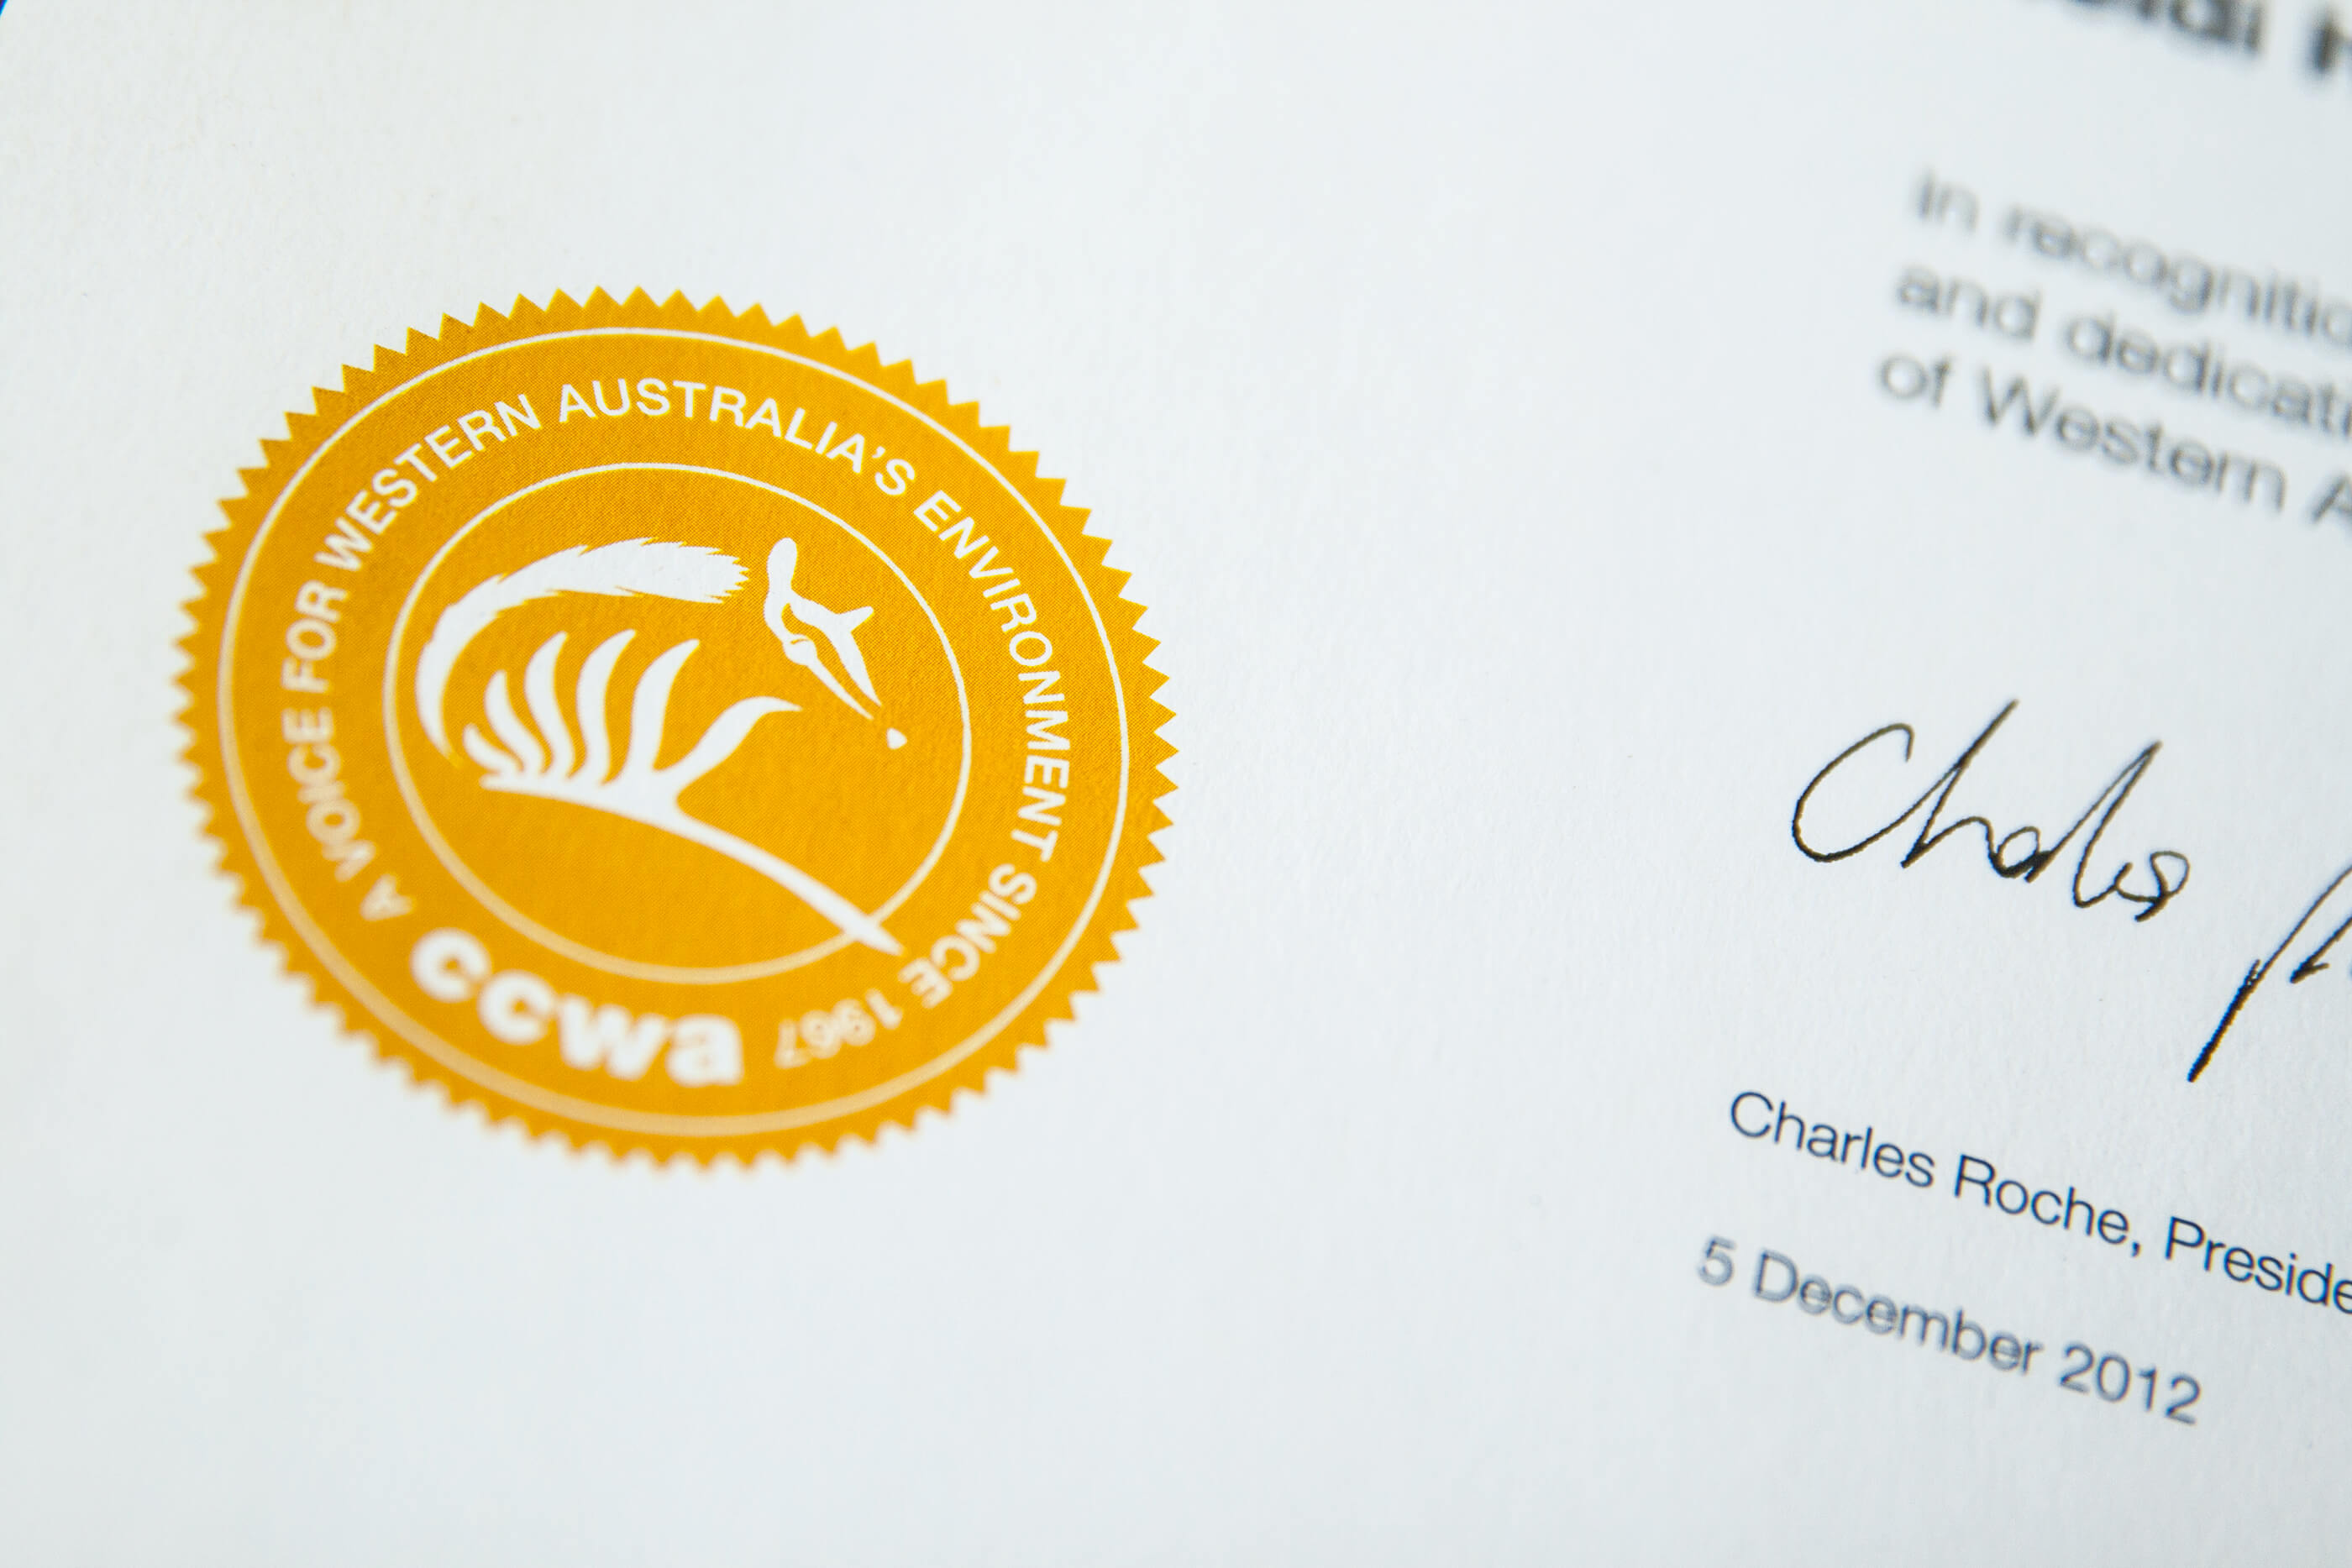 ccwa_awards_stamp